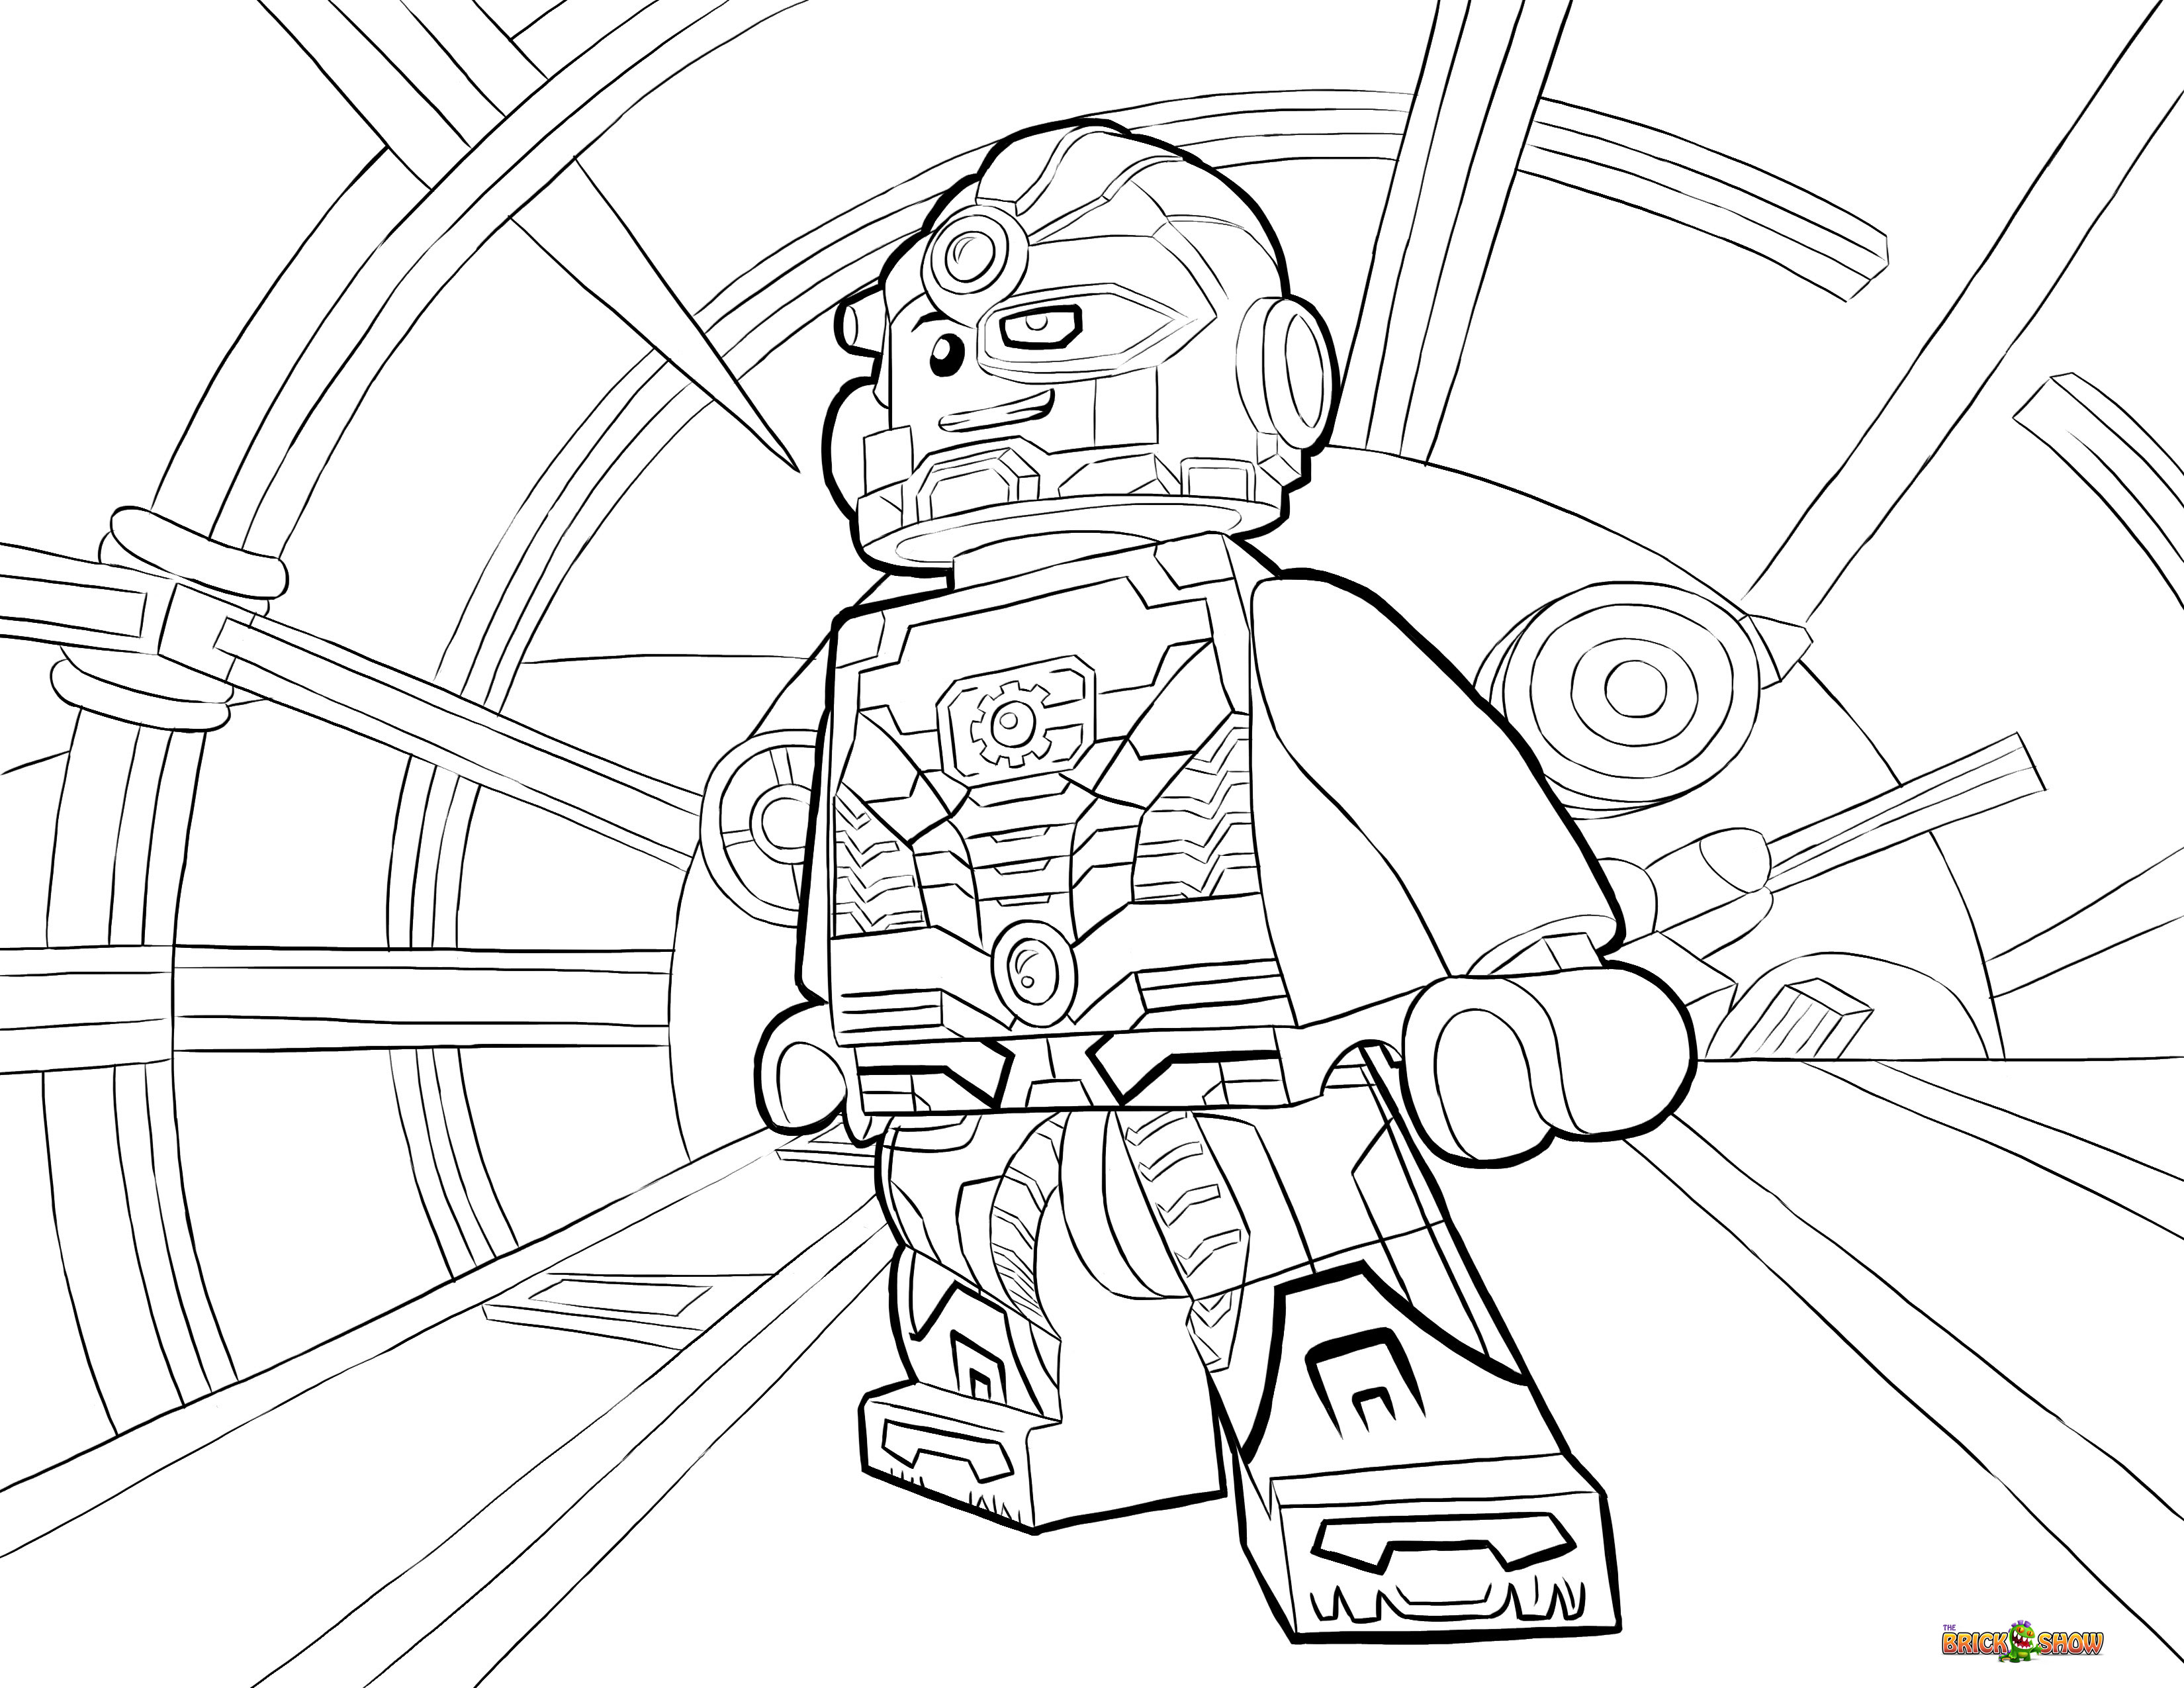 lego superman lego superman coloring pages to download and print for free lego superman 1 2